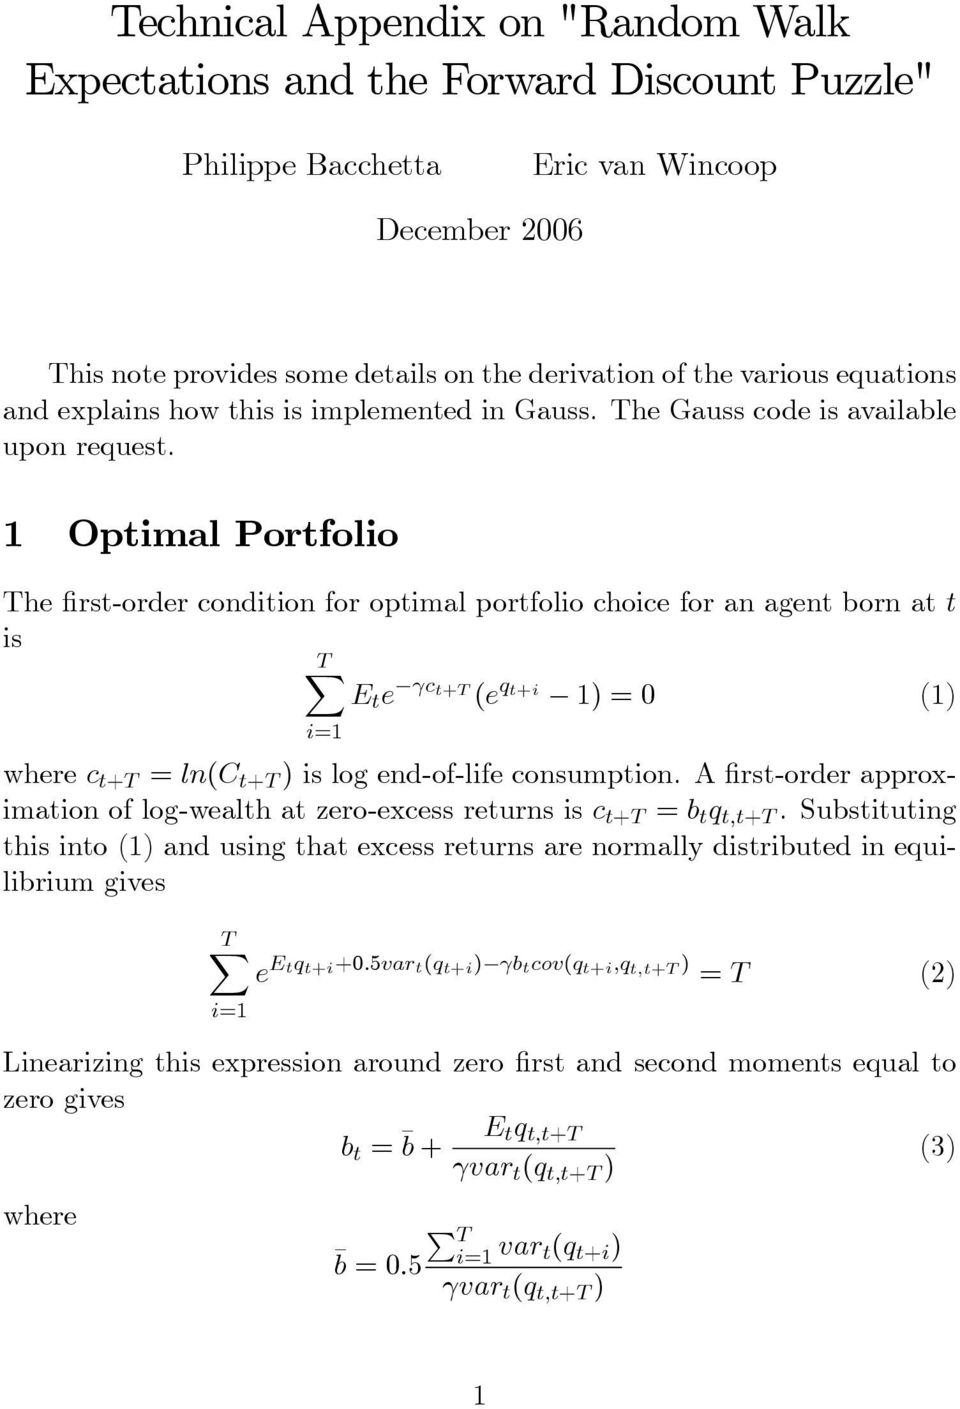 1 Optimal Portfolio The rst-order condition for optimal portfolio choice for an agent born at t is E t e c t+t (e q t+i 1) = 0 (1) where c t+t = ln(c t+t ) is log end-of-life consumption.